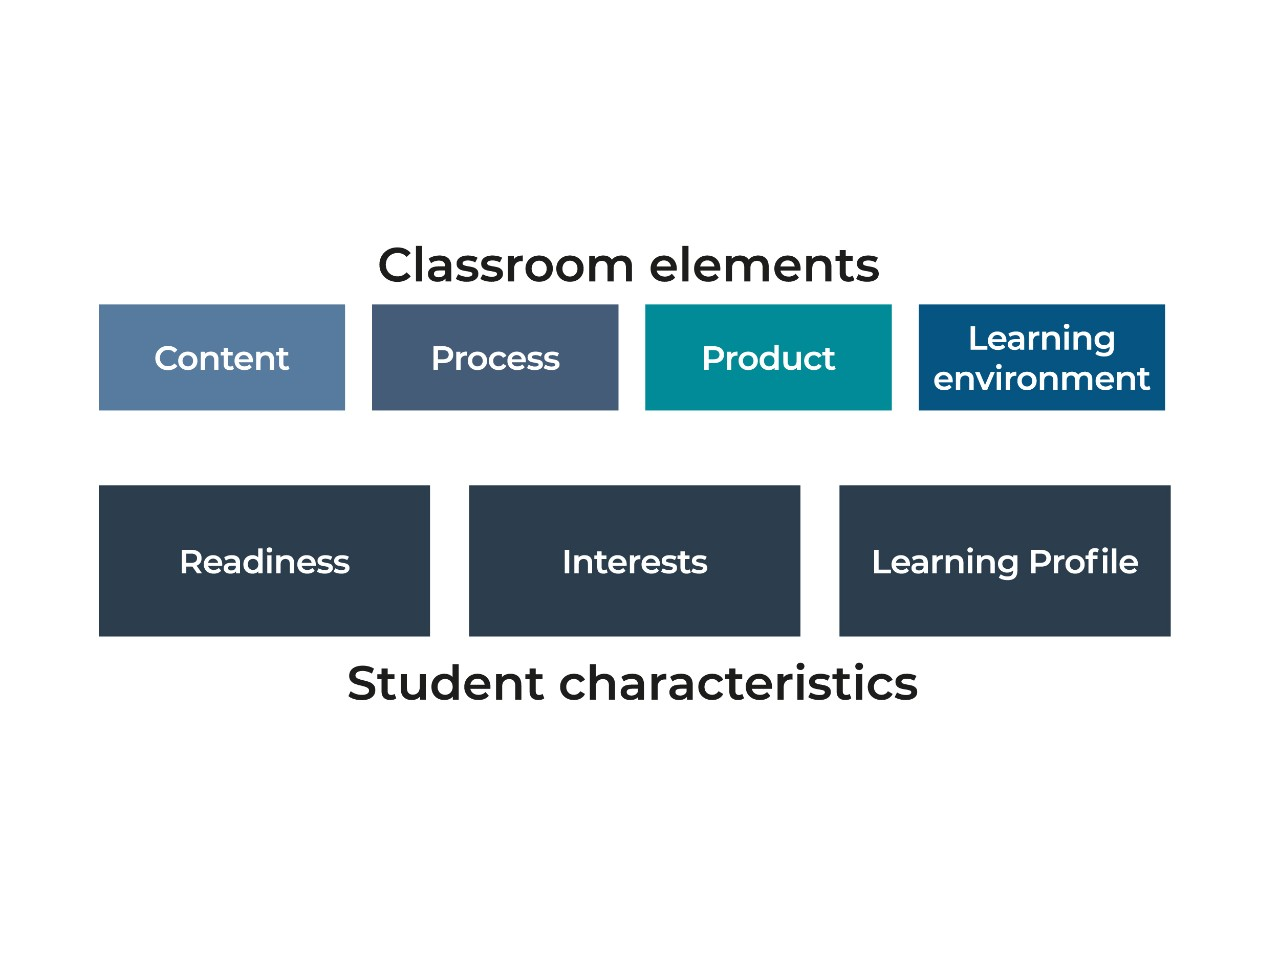 Differentiating classroom elements and student characteristics